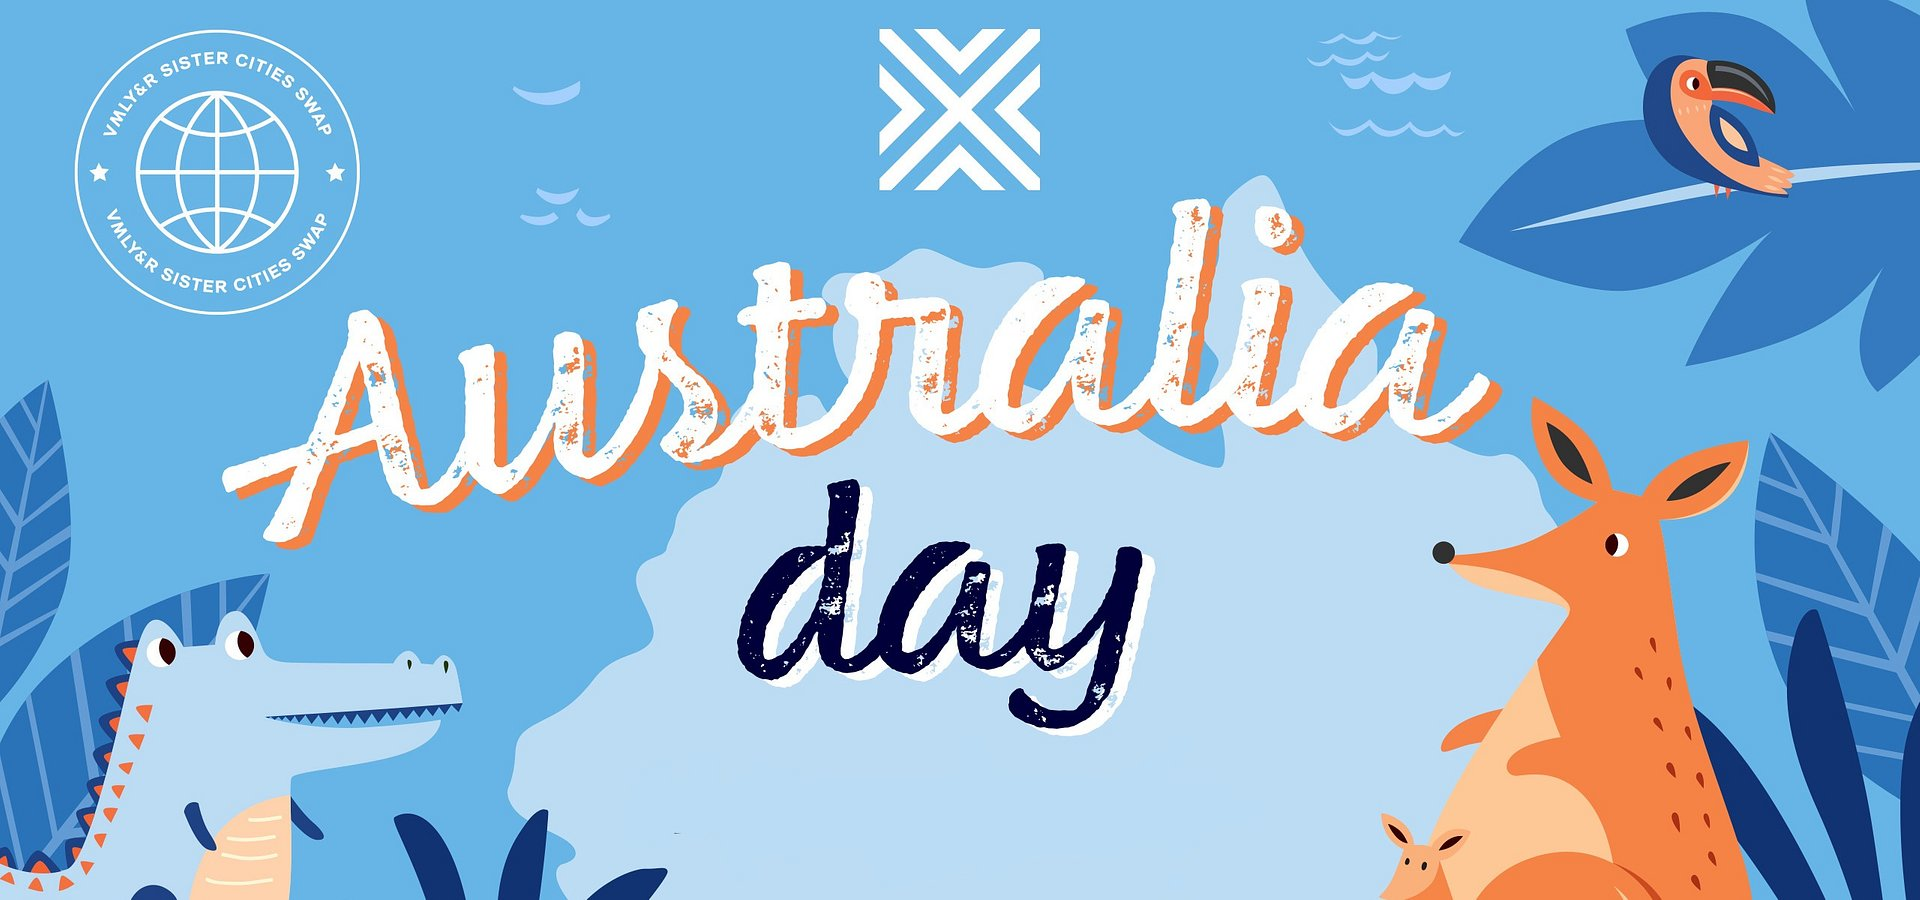 G'Day Australia! czyli Sister Cities Swap w VMLY&R Poland